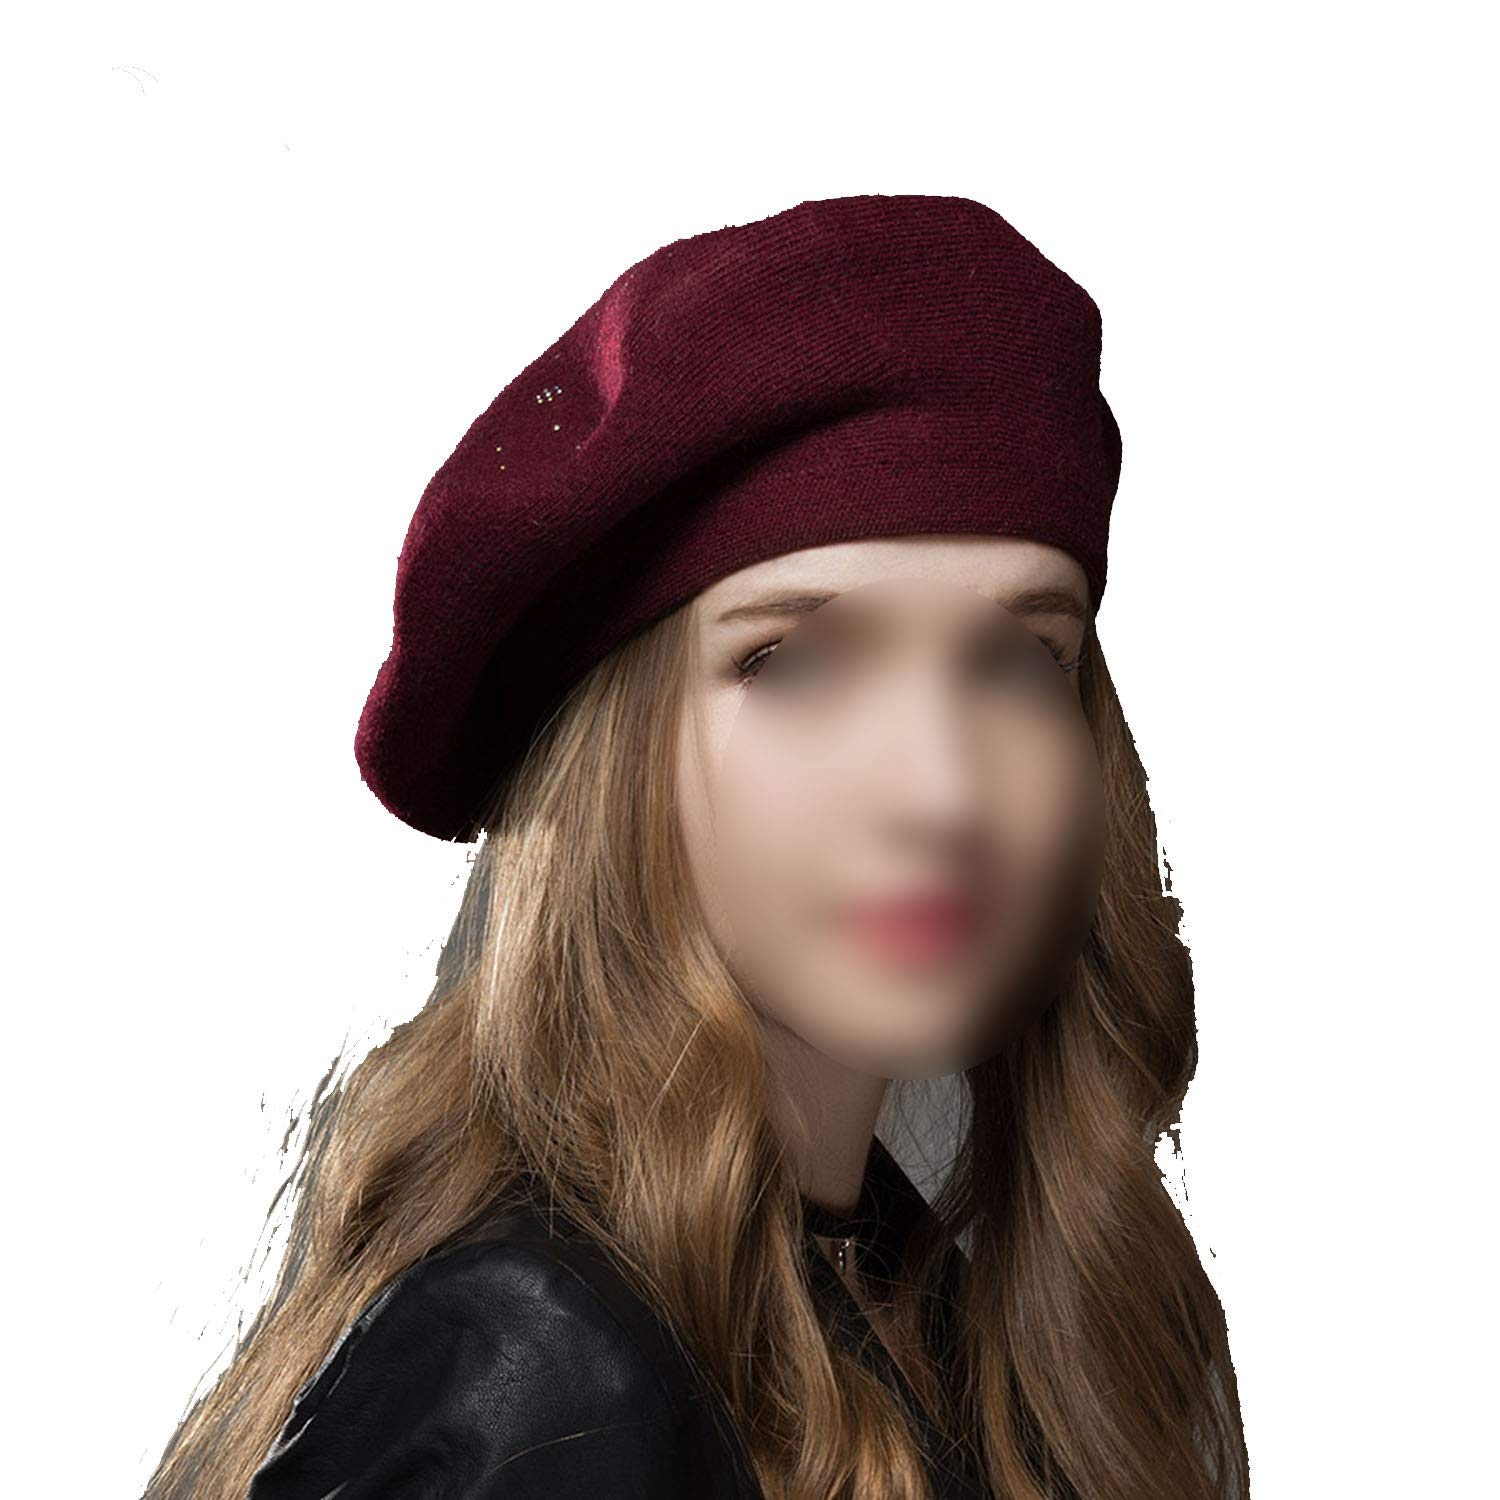 3e095fb093ed94 Sunglasses & Eyewear Accessories Dami-shop High end Winter Hat Berets 2018  New Wool Cashmere Womens Warm Brand Casual Hats for Girls Cap